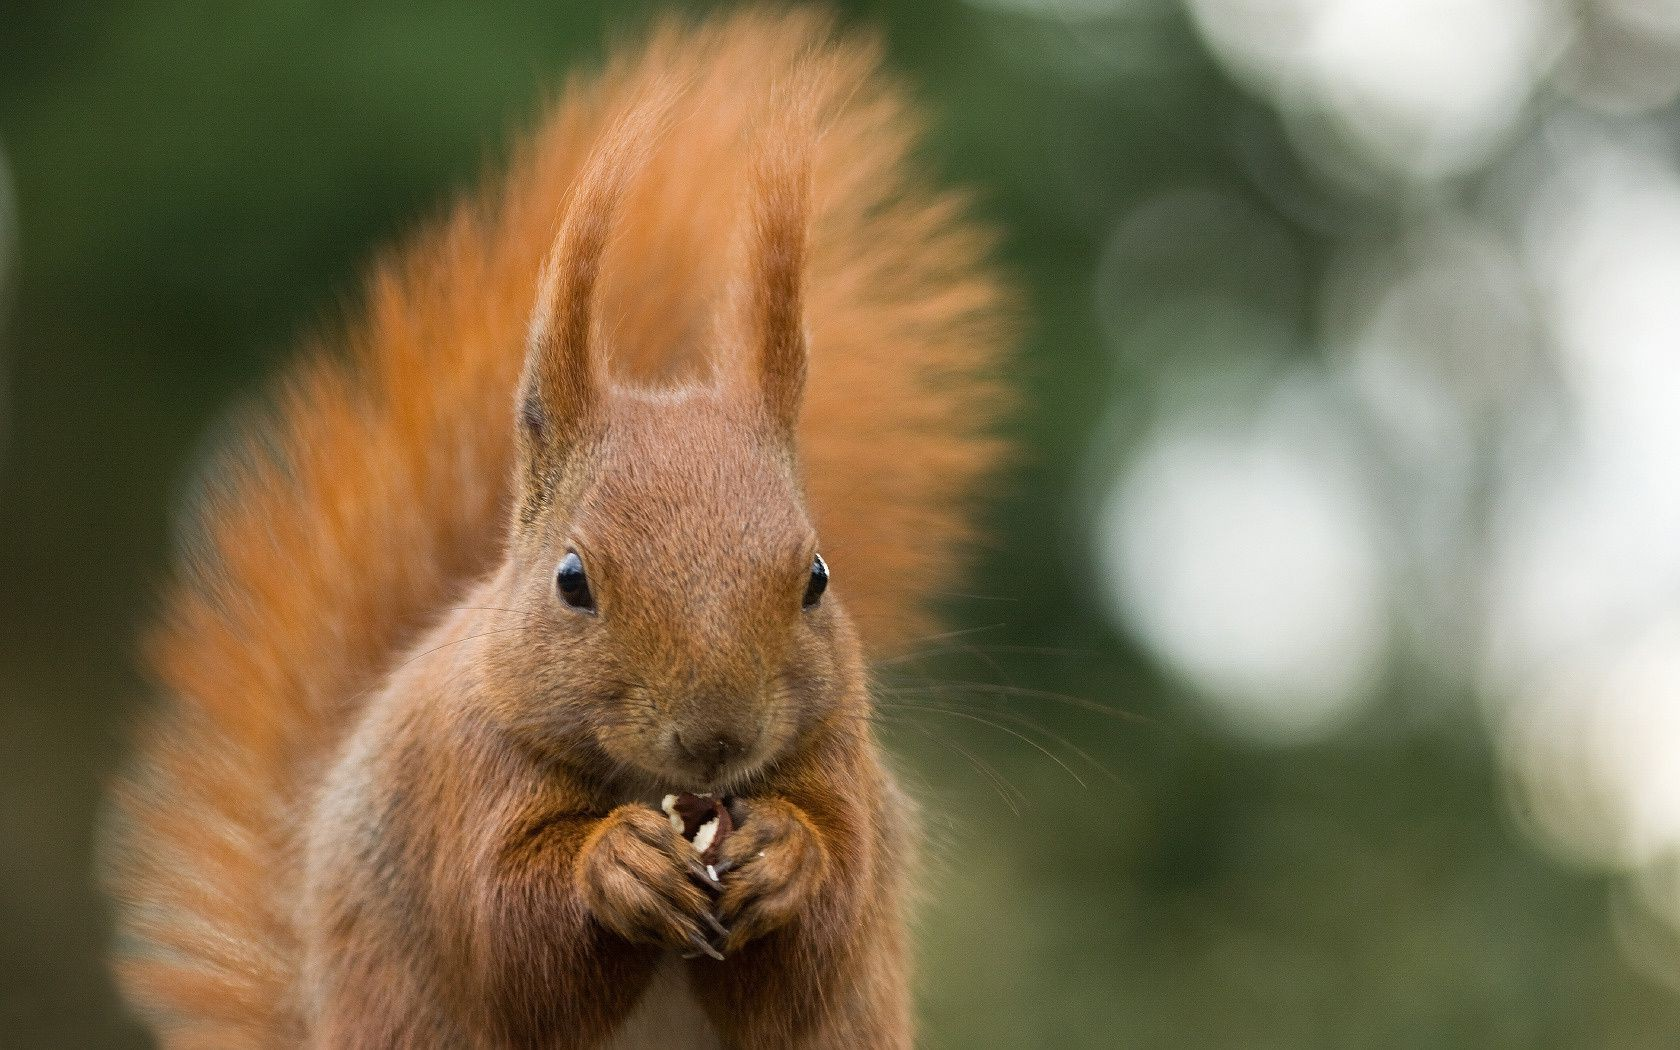 Squirrel animal nut chewing glare nature macro green